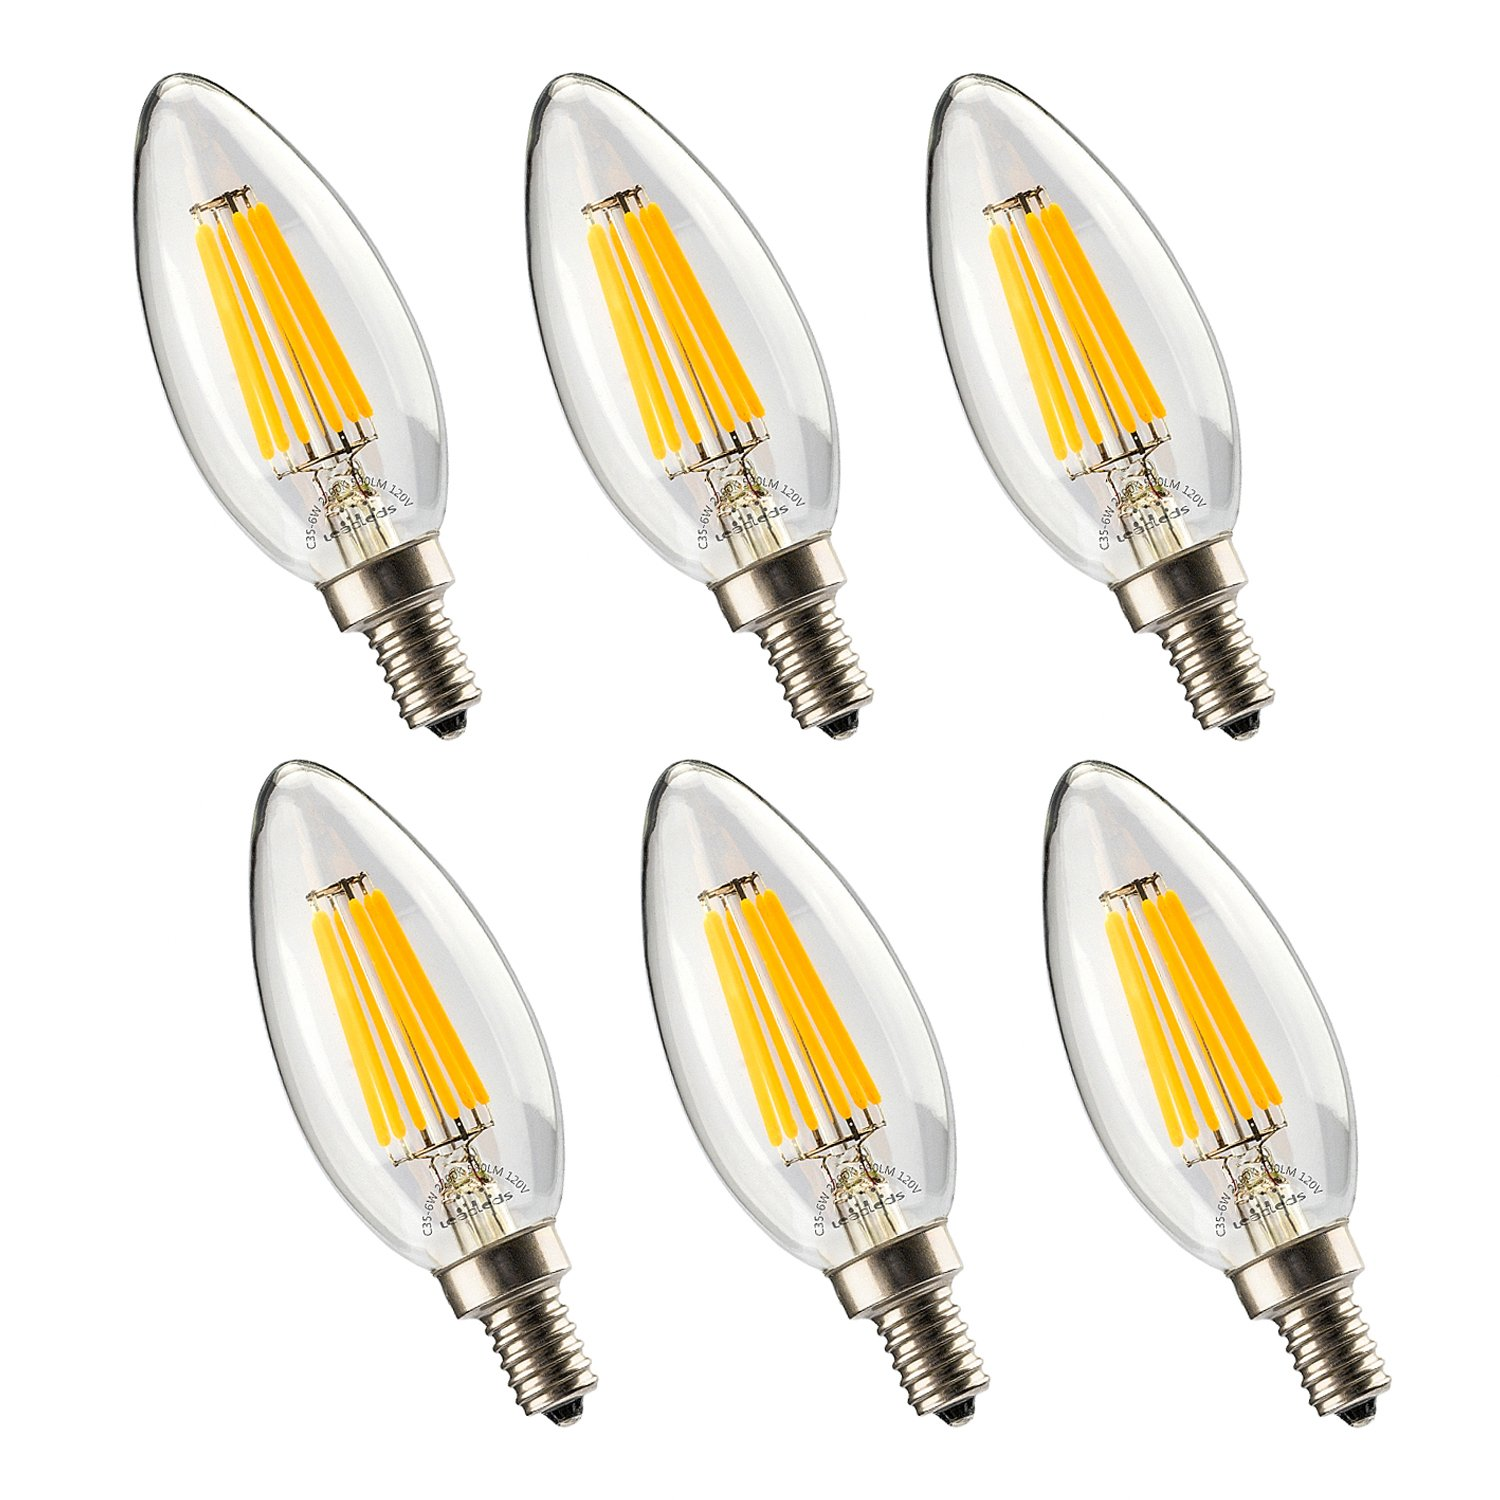 Buy leadleds 1206w energy saving vintage bulb with candelabra base leadleds 1206w energy saving vintage bulb with candelabra base blunt tip b11 light bulb 6w arubaitofo Gallery